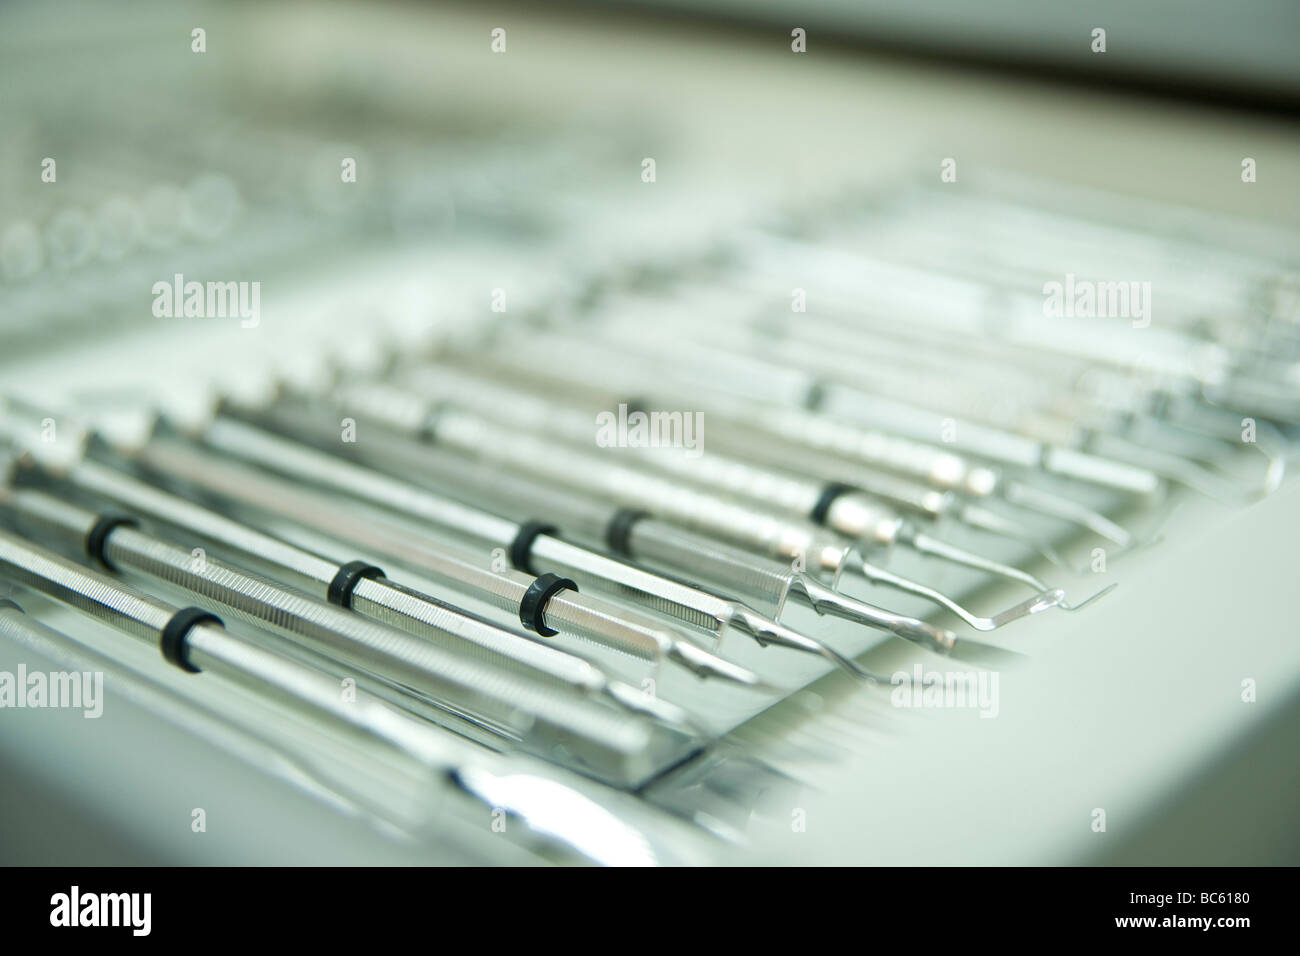 Close-up of dental equipments - Stock Image